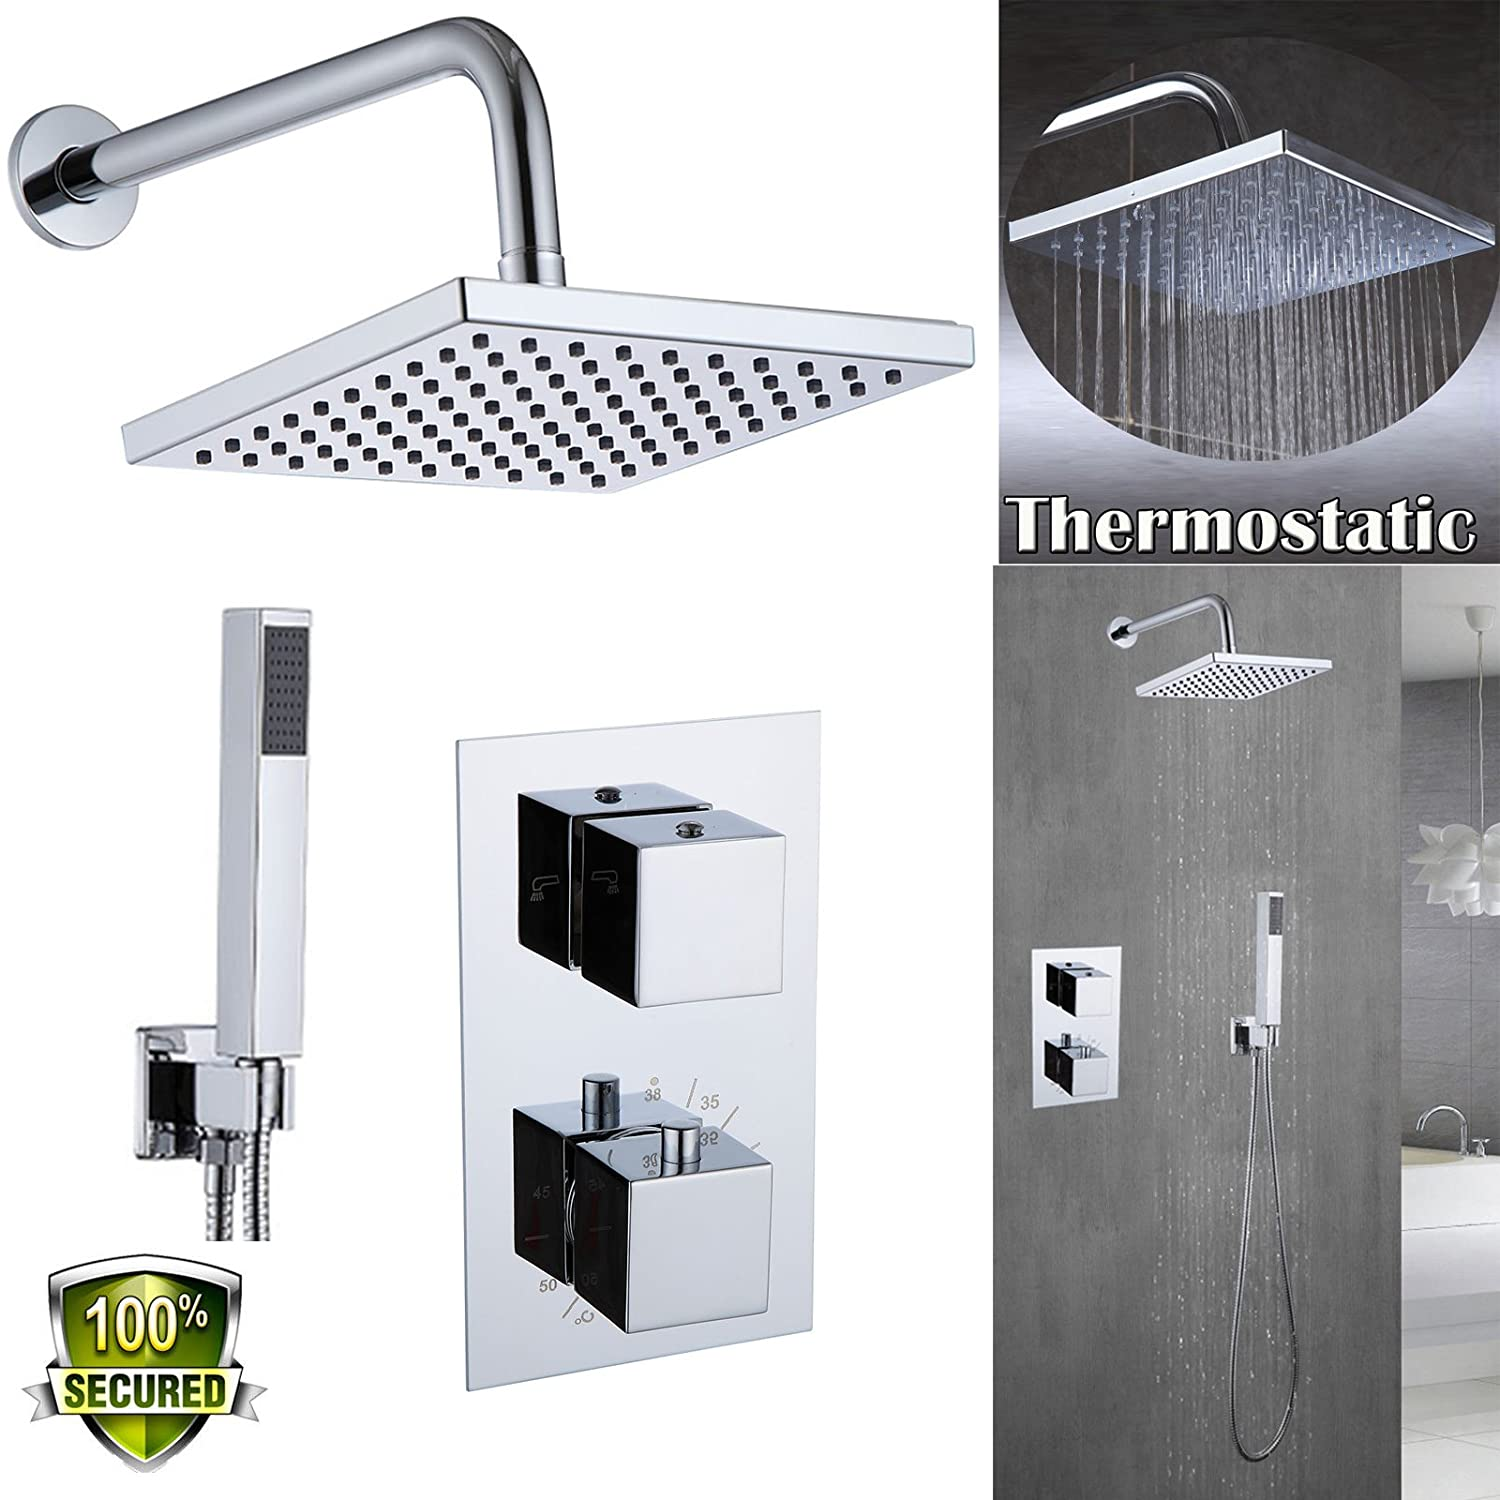 dicn Shower System Wall Mounted Set Concealed Faucet Brass Switch Thermostatic Mixer Valve + 8